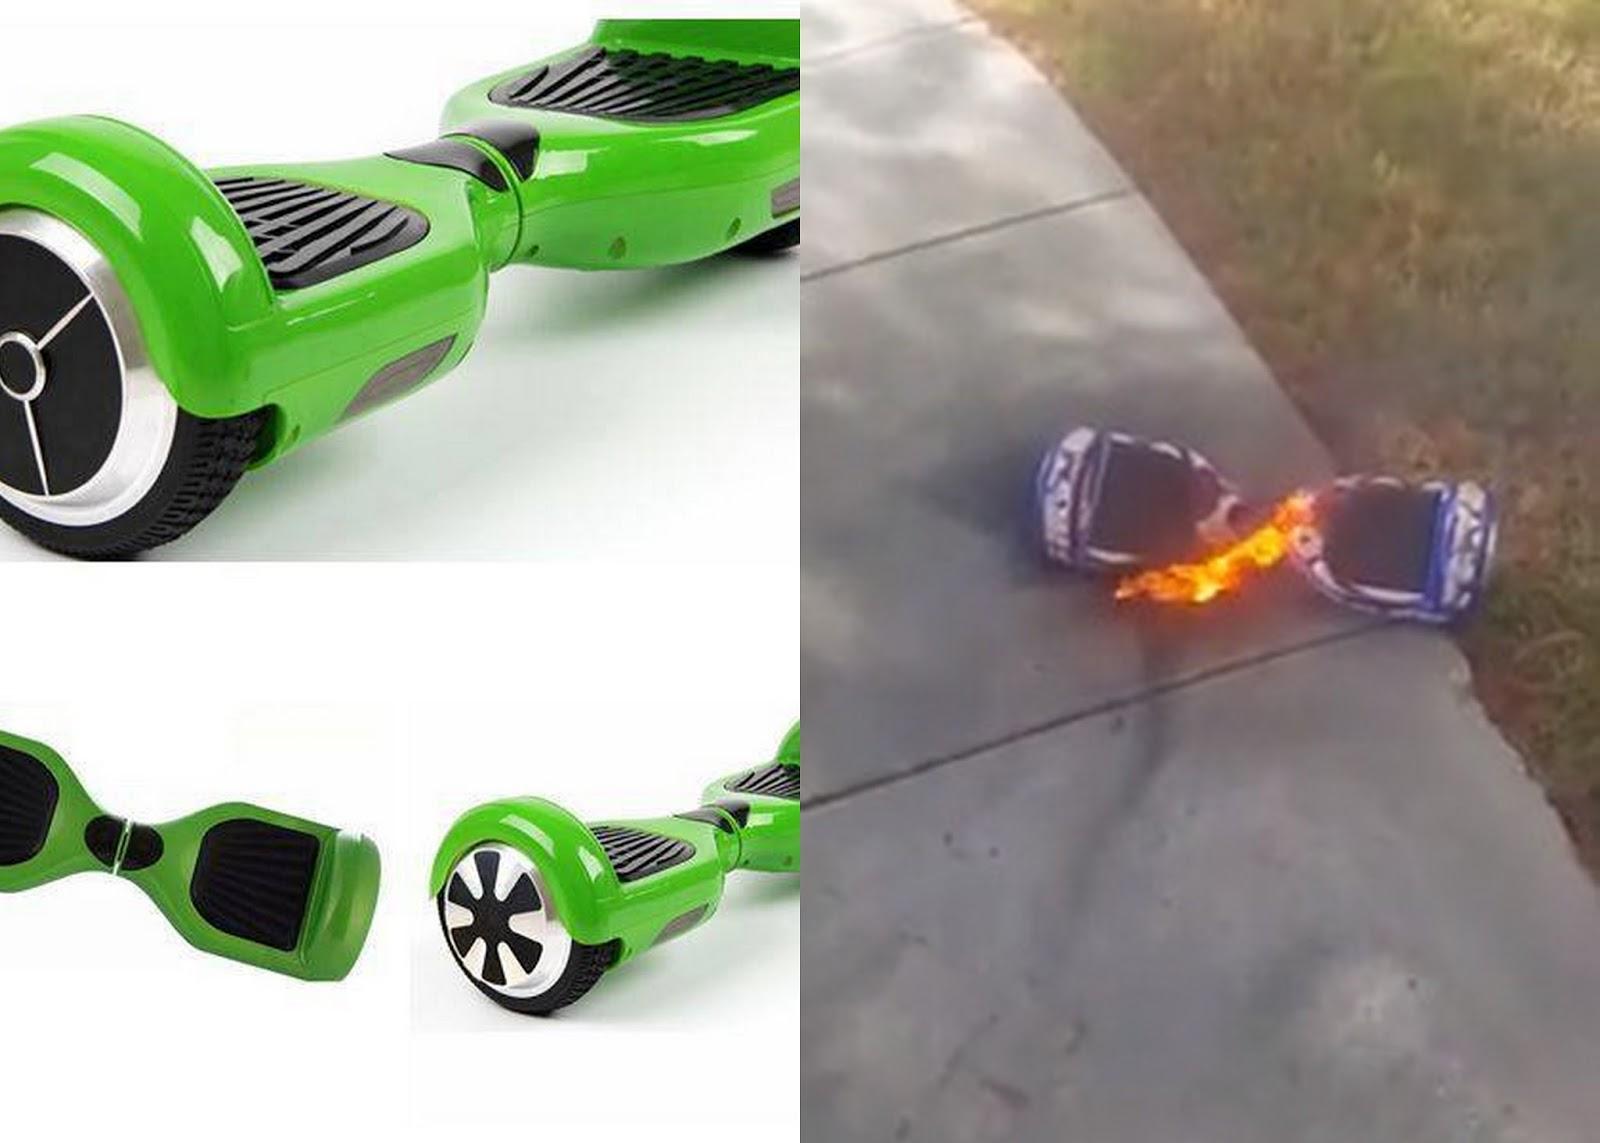 10 safety facts to prevent your hoverboard from fire hazards